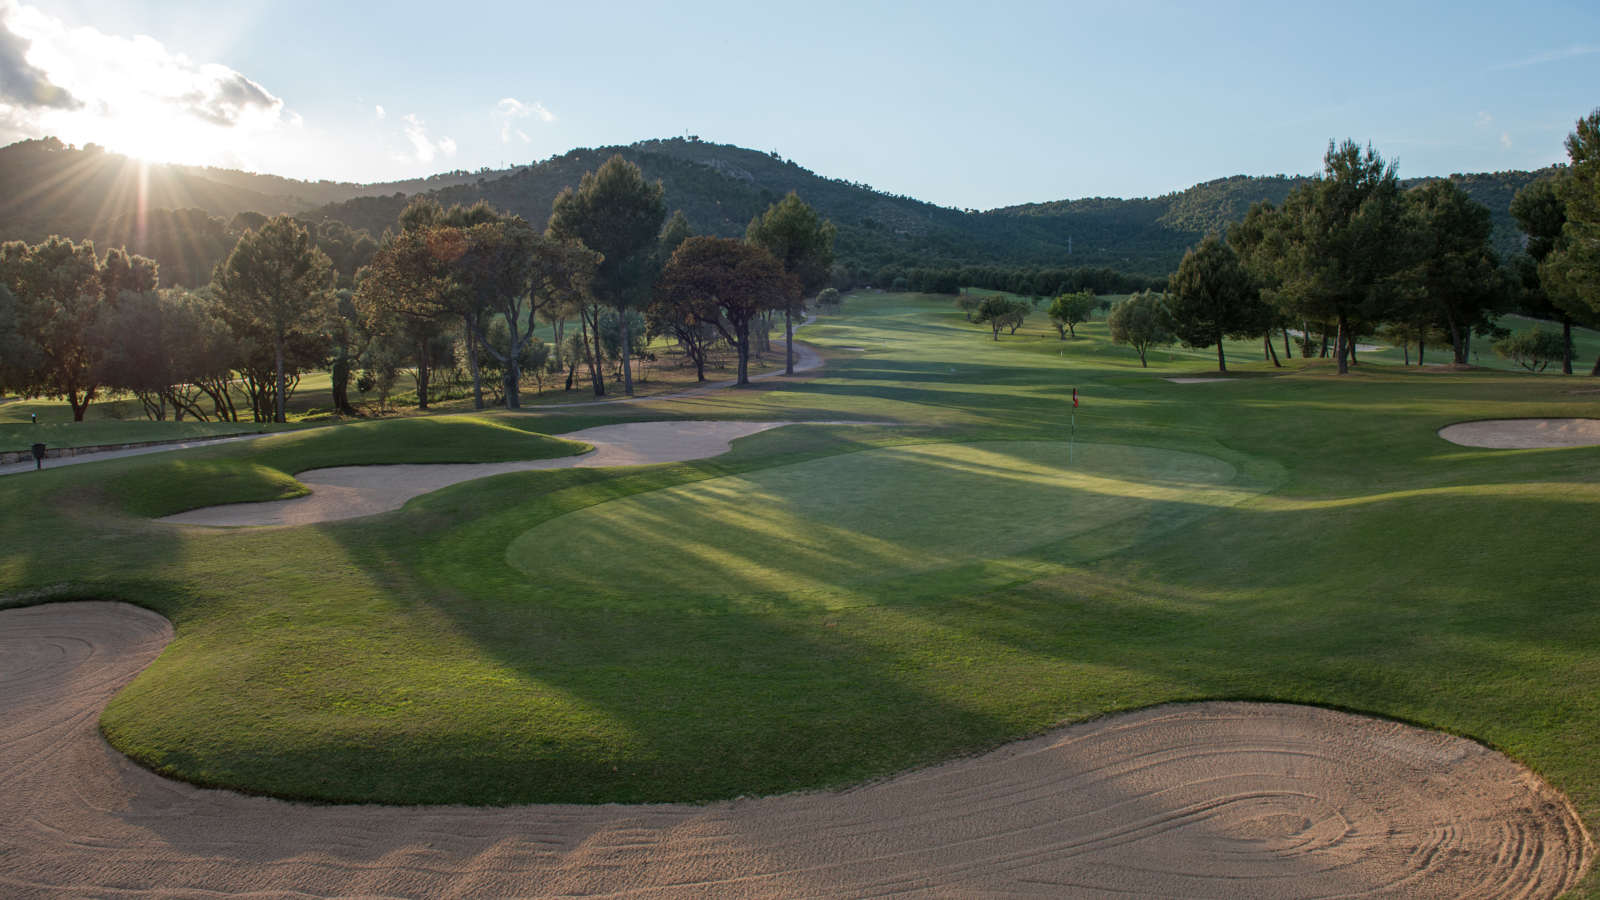 Son Quint golf at The St. Regis Mardavall Mallorca